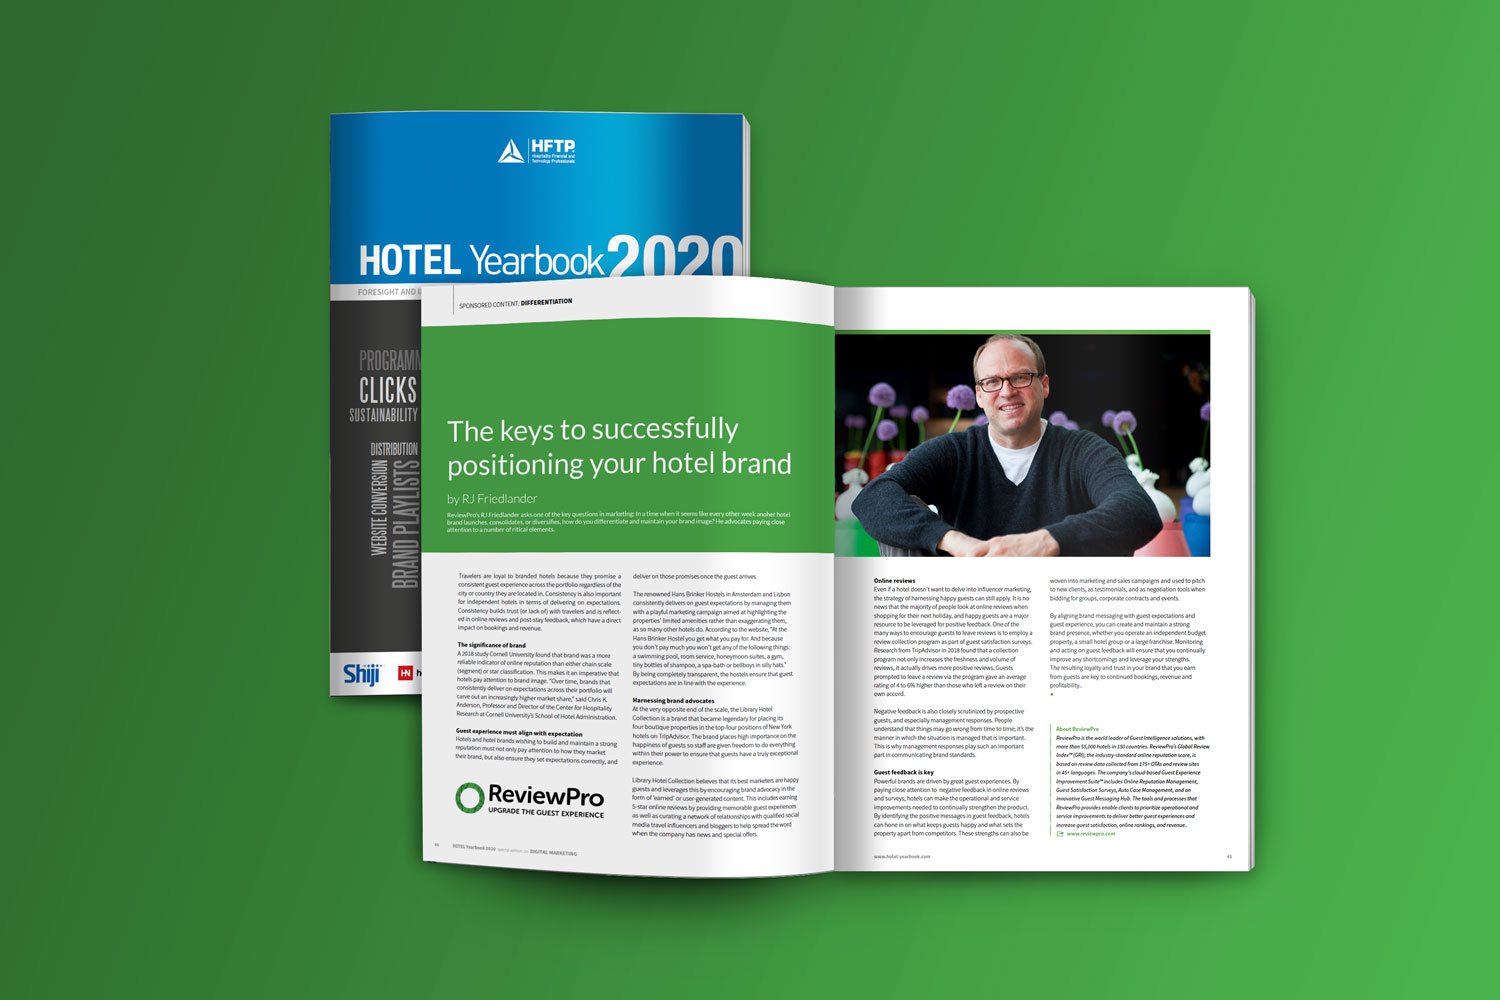 Once Driven Reviews >> Shiji Sponsors Hotel Yearbook 2020 On The Future Of Hotel